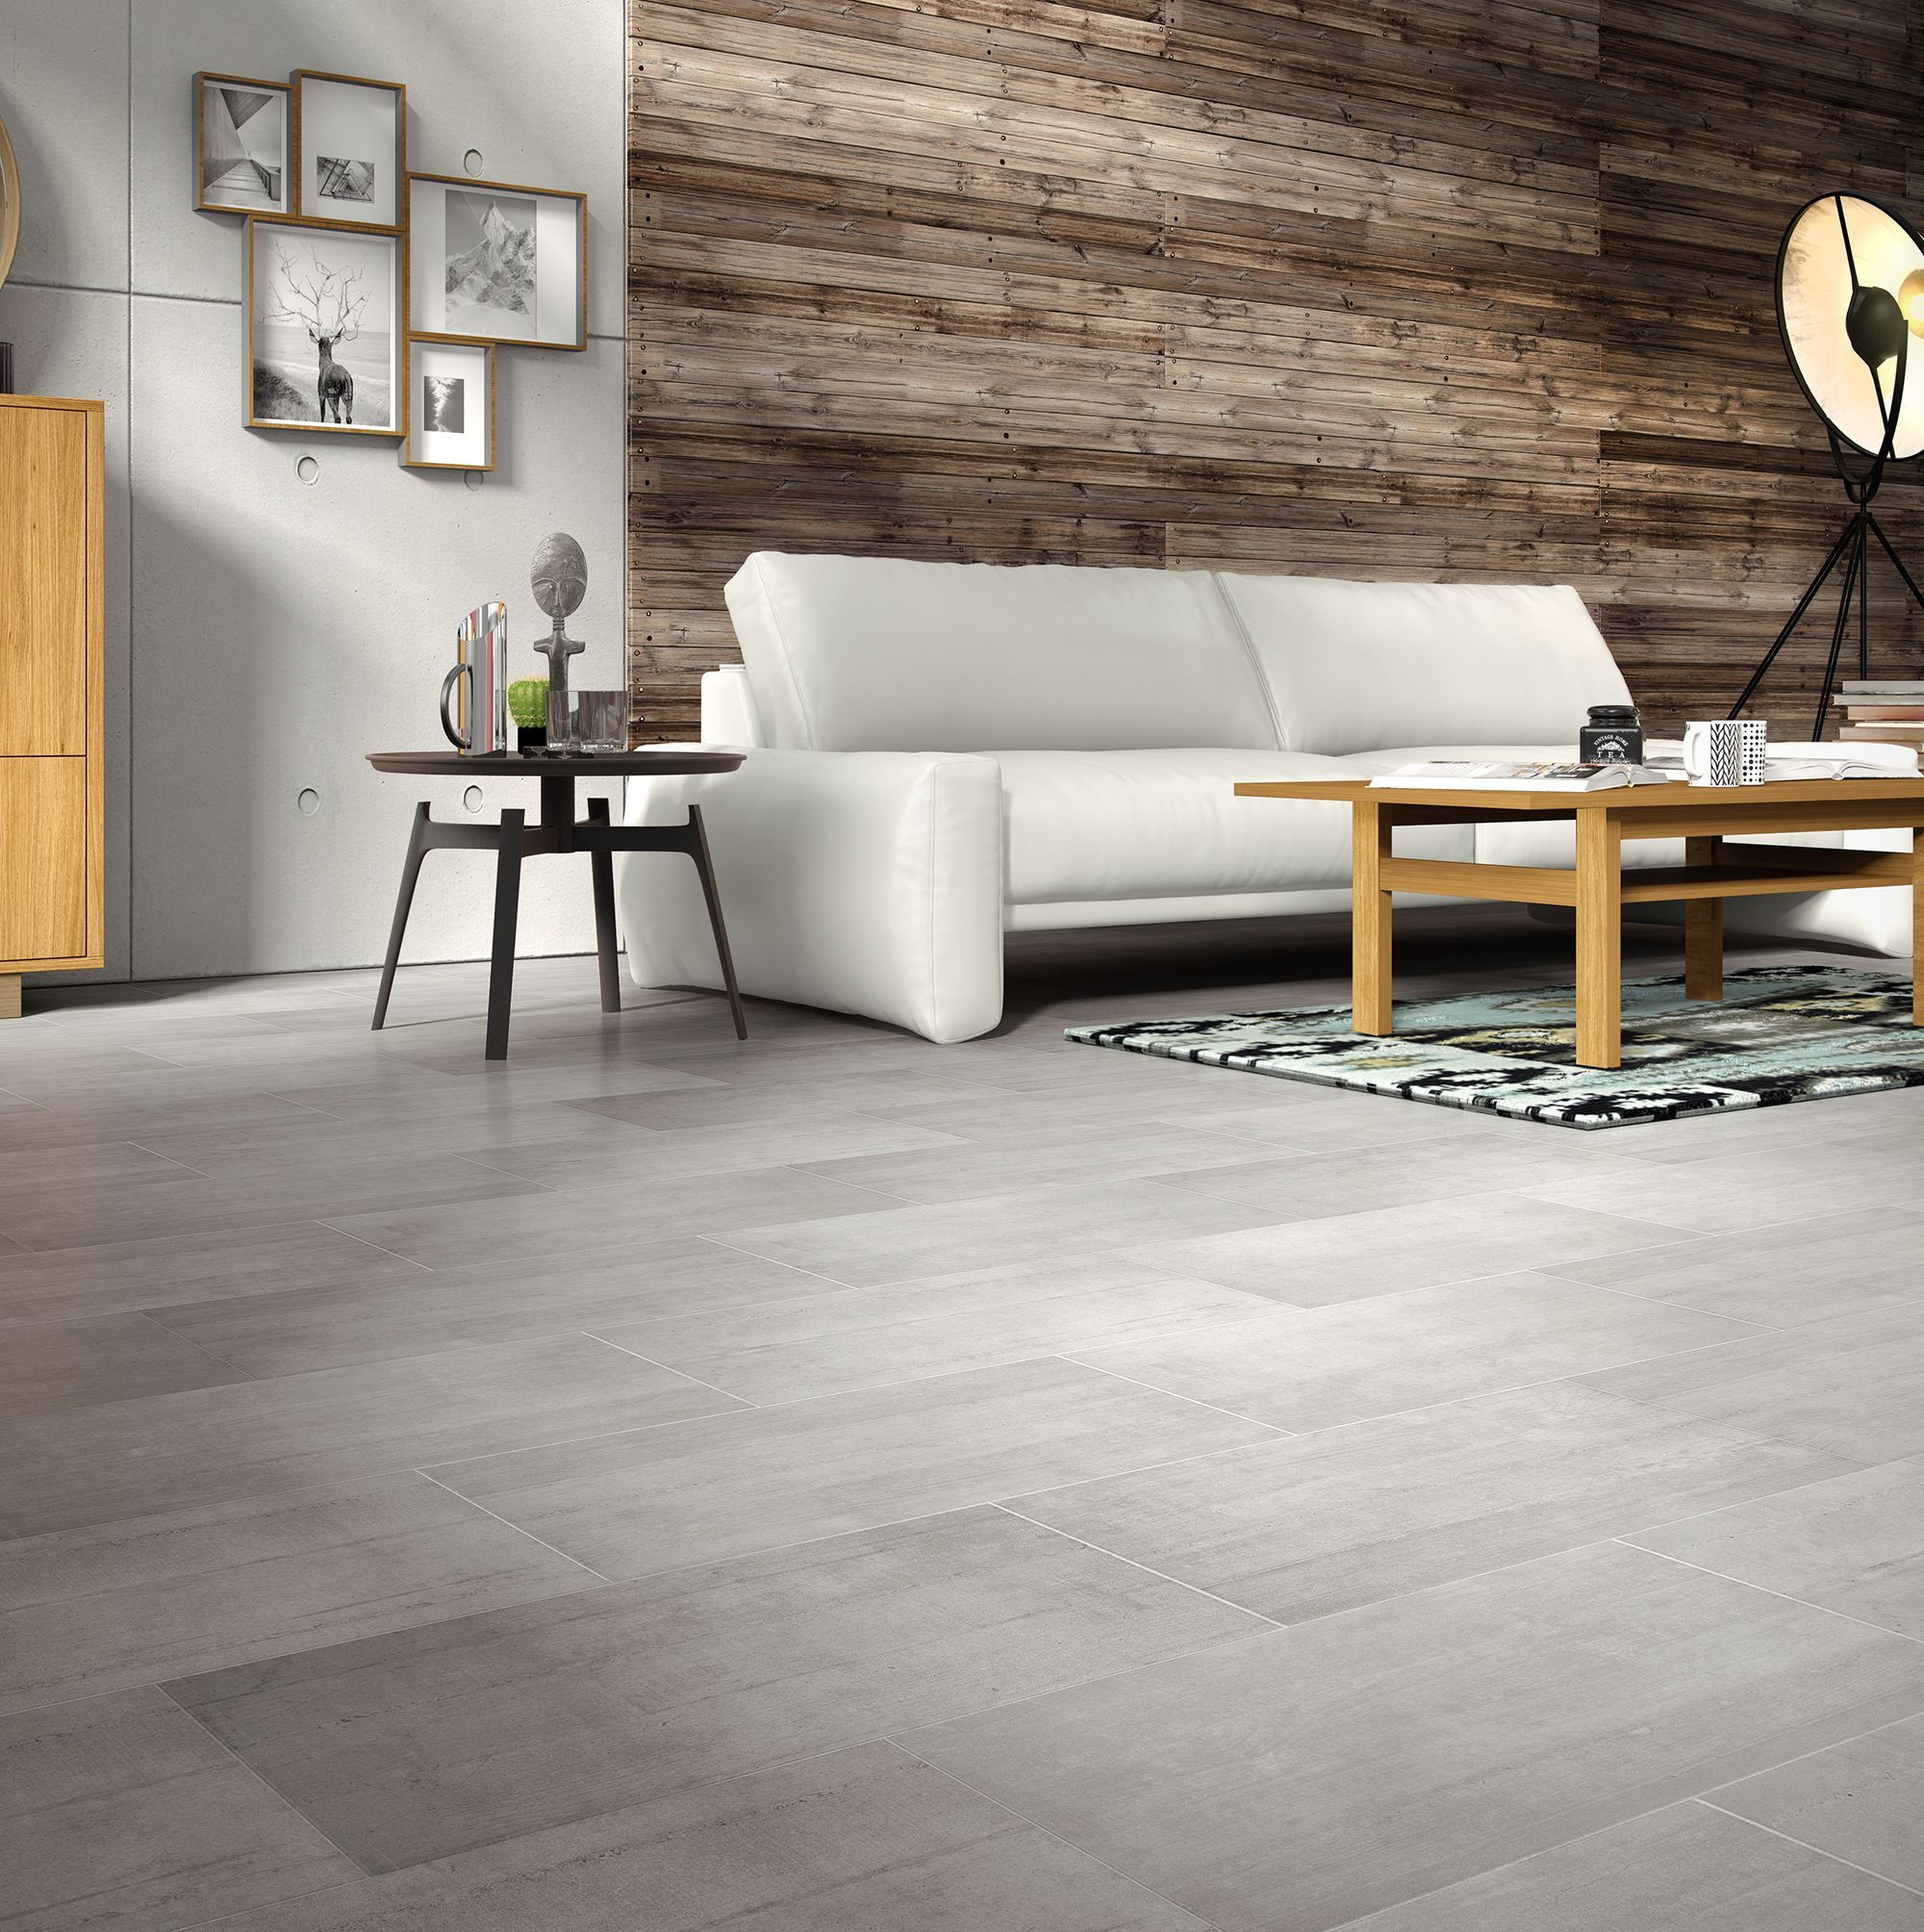 Wood Effect Laminate Flooring For Bathrooms: Leggiero Grey Concrete Effect Laminate Flooring 1.72 M²